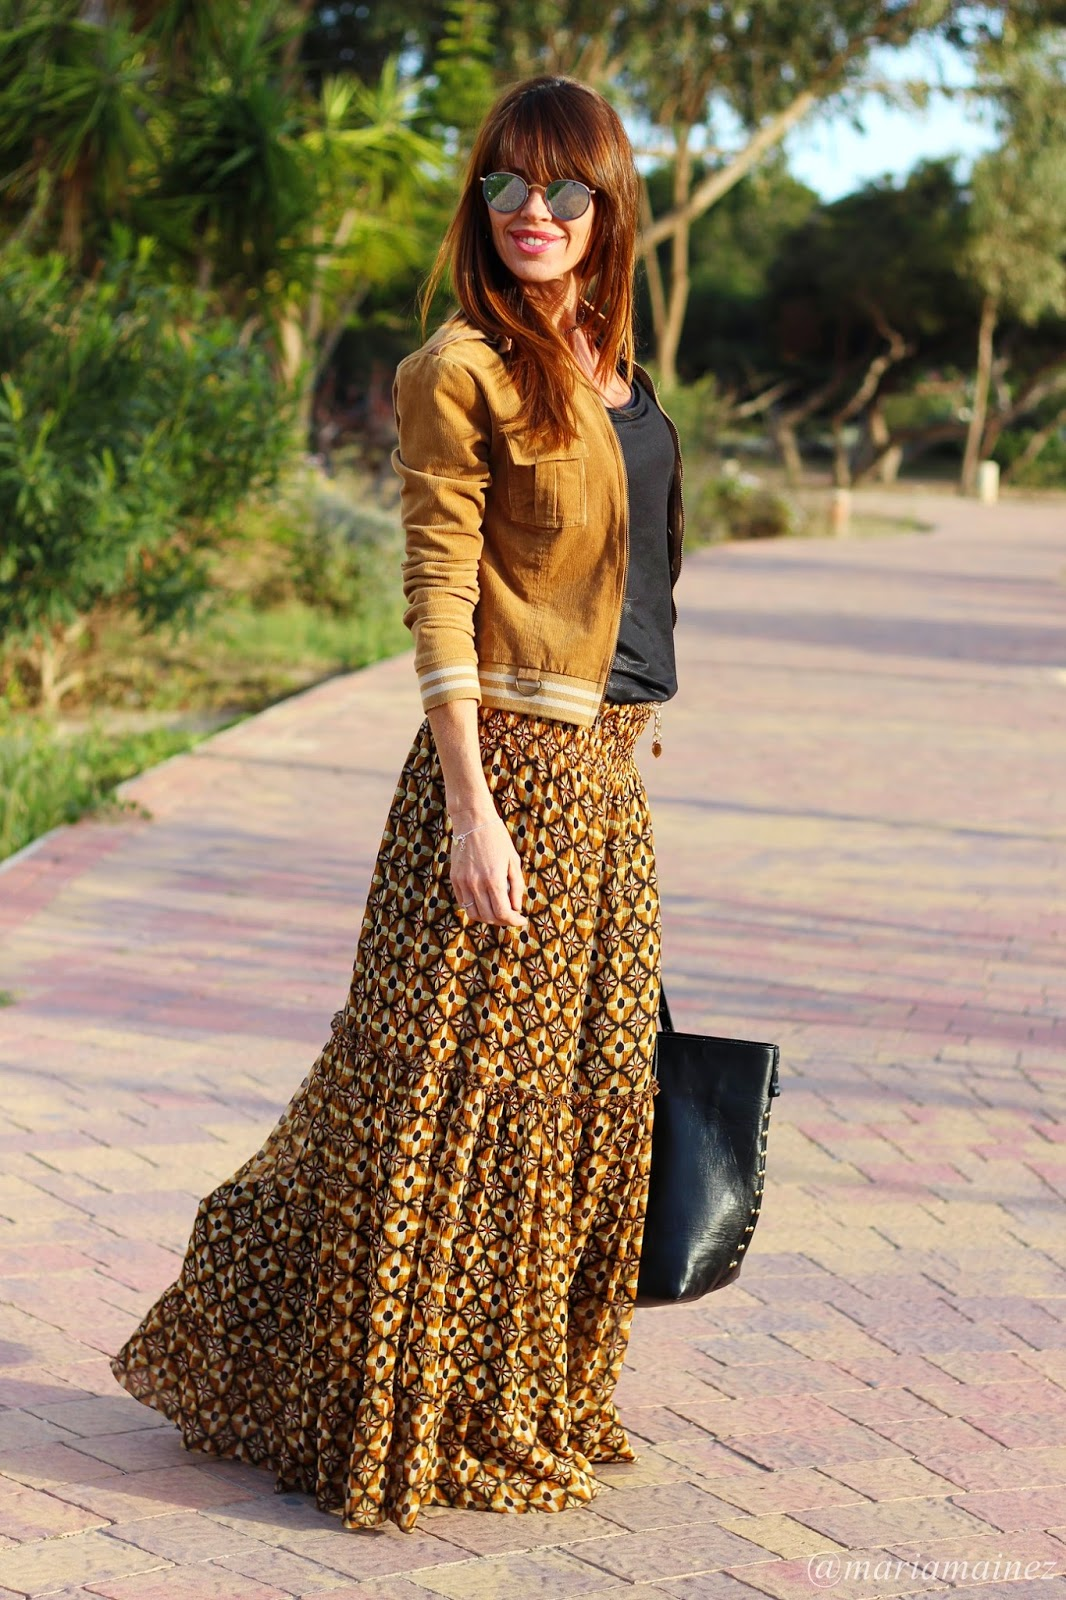 Falda larga - Colores tierra - Hippie chic - fashion blogger